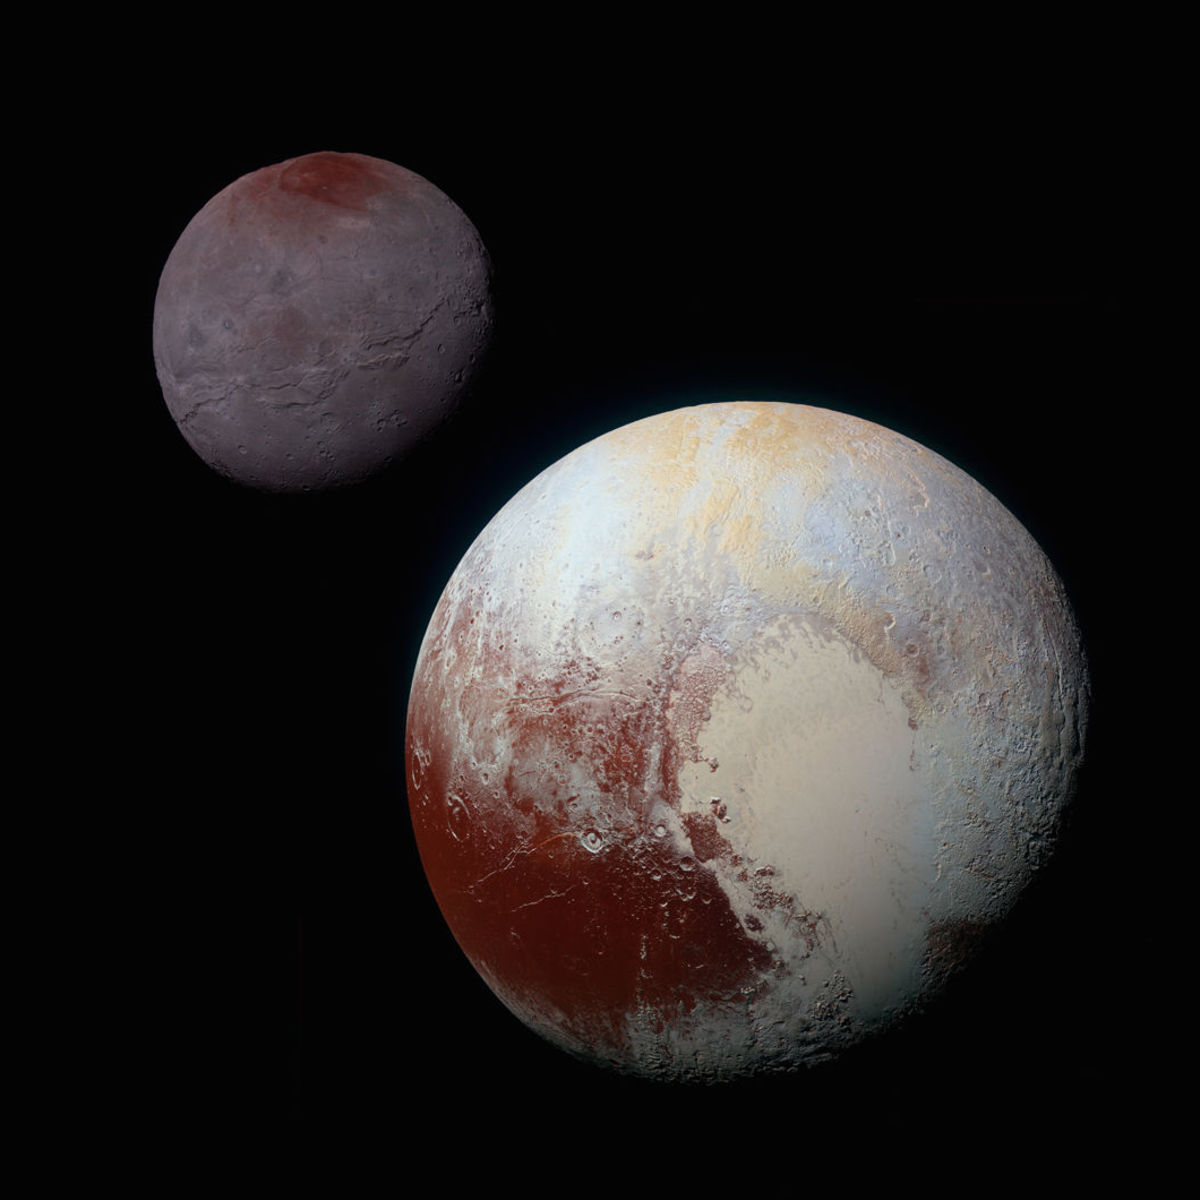 Actual images of Pluto and its large moon Charon, shown to scale and with correct contrast, from New Horizon observations. Credit: NASA/JHUAPL/SwRI